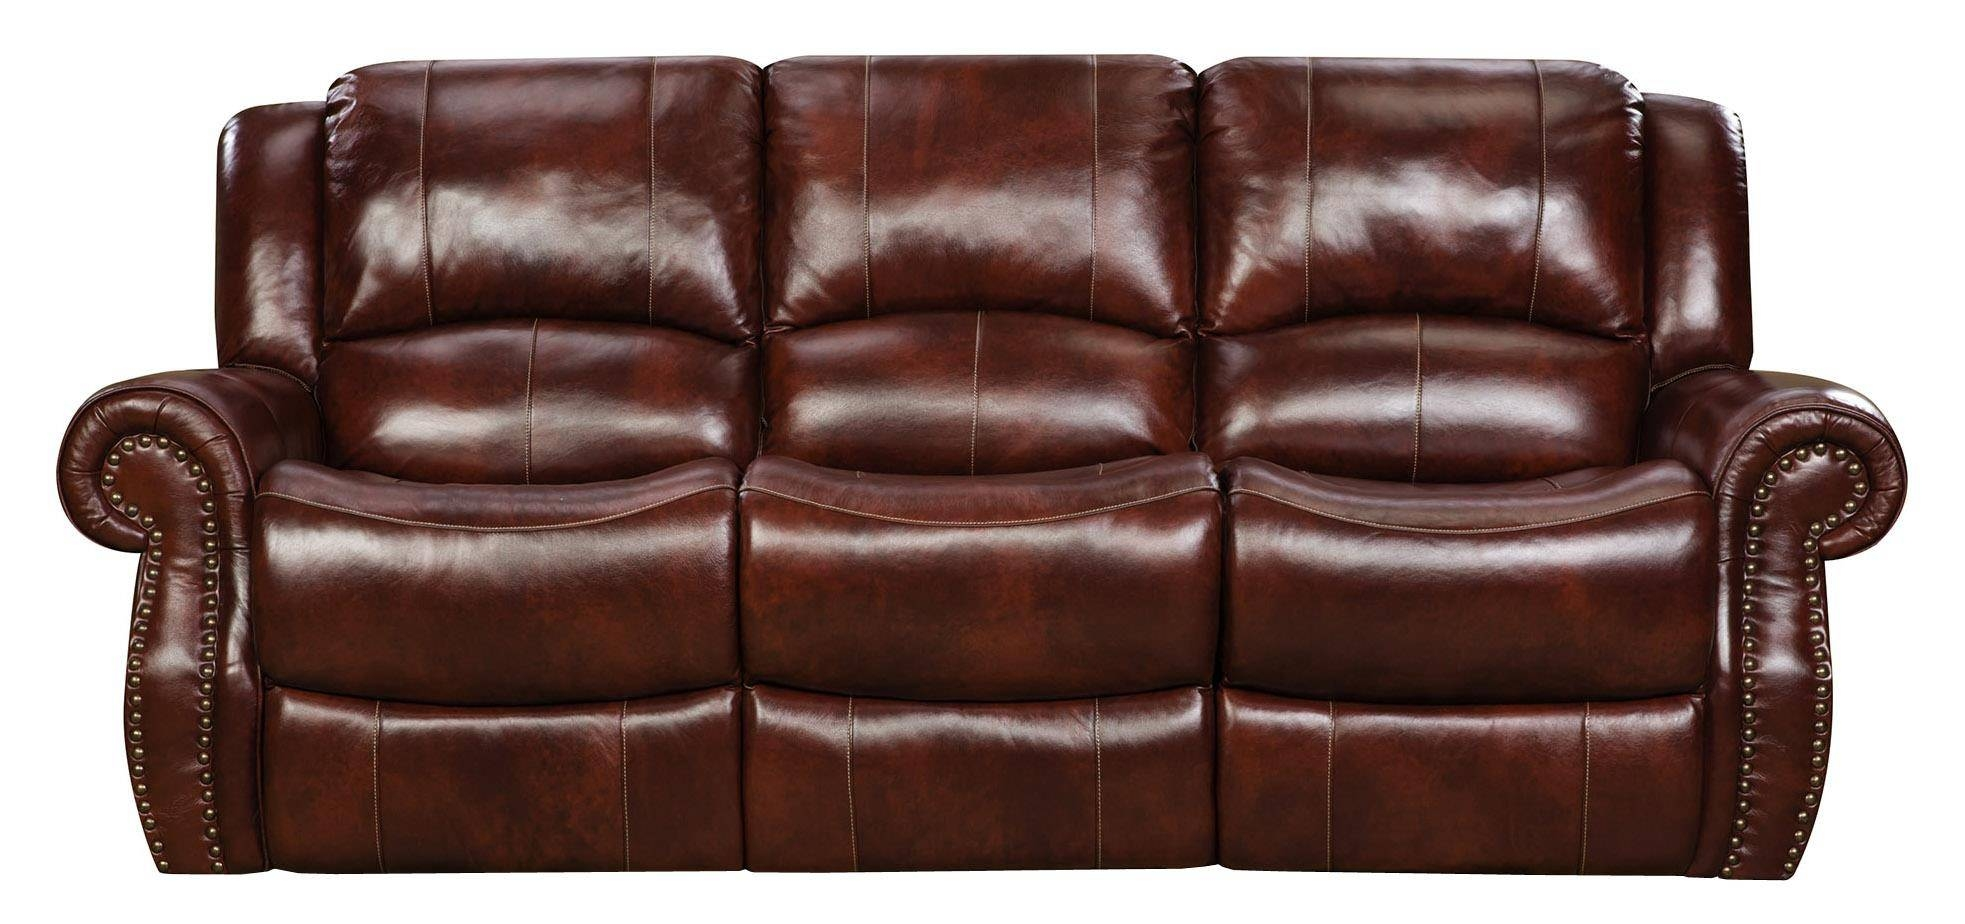 Corinthian Alexander Alexander Leather Reclining Sofa - Great for Corinthian Sofas (Image 7 of 15)